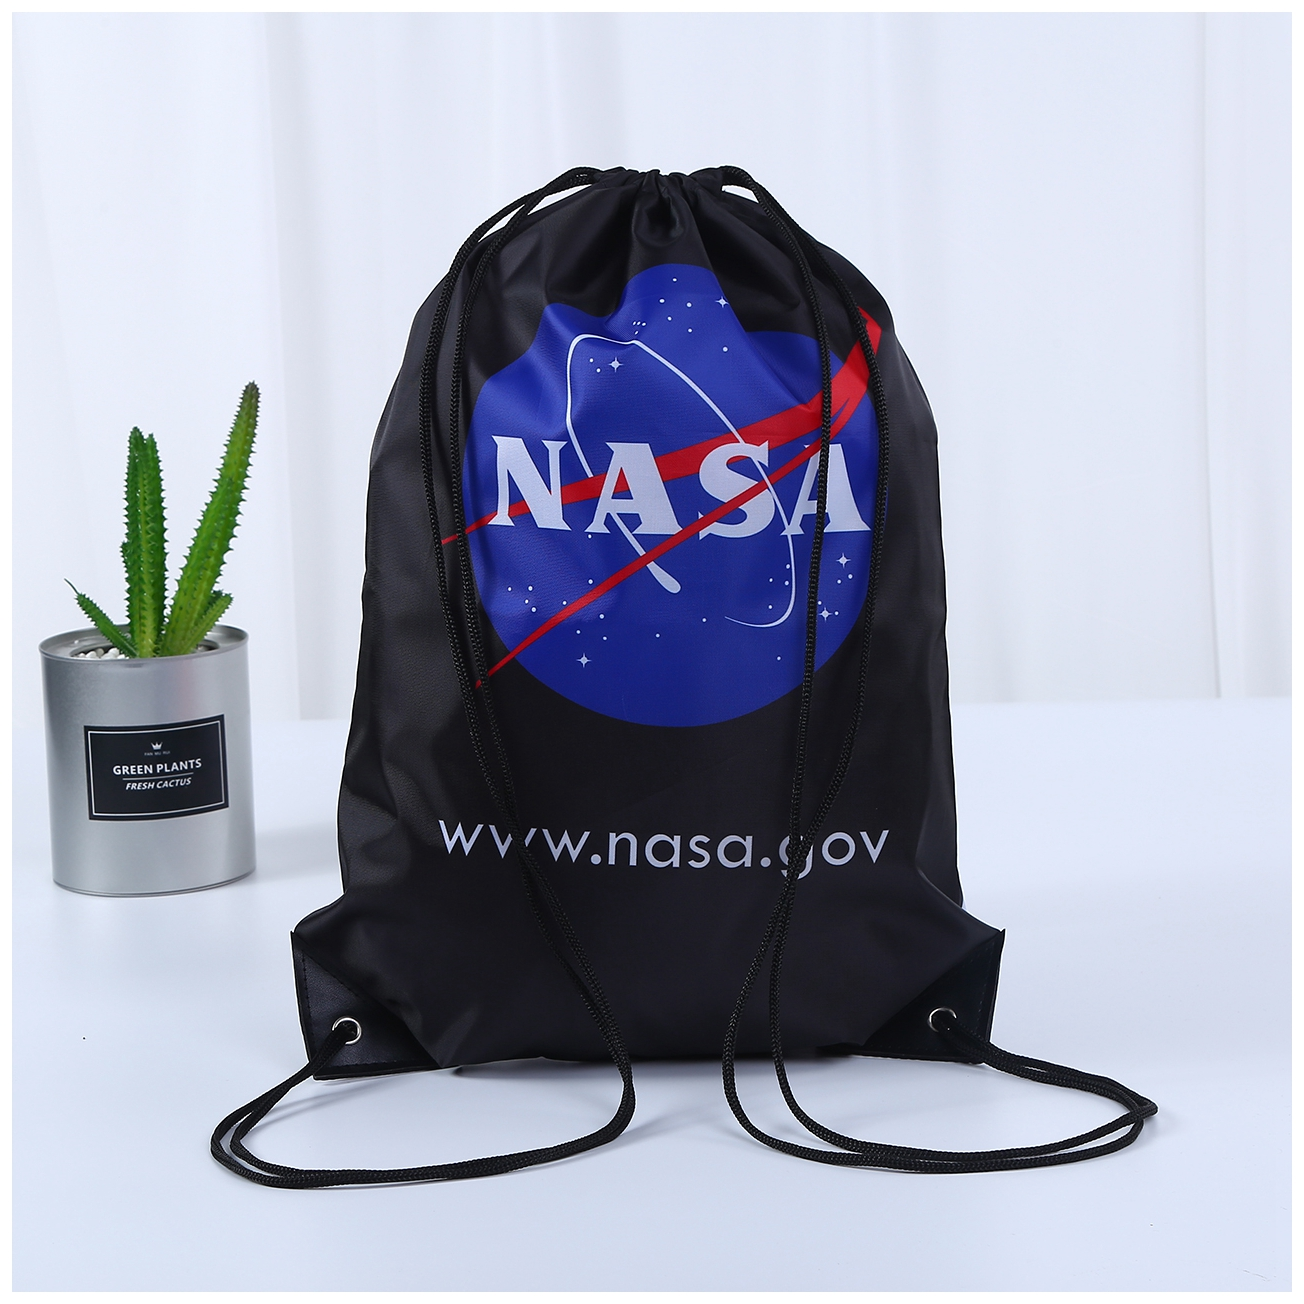 Customized NASA Drawstring Bag